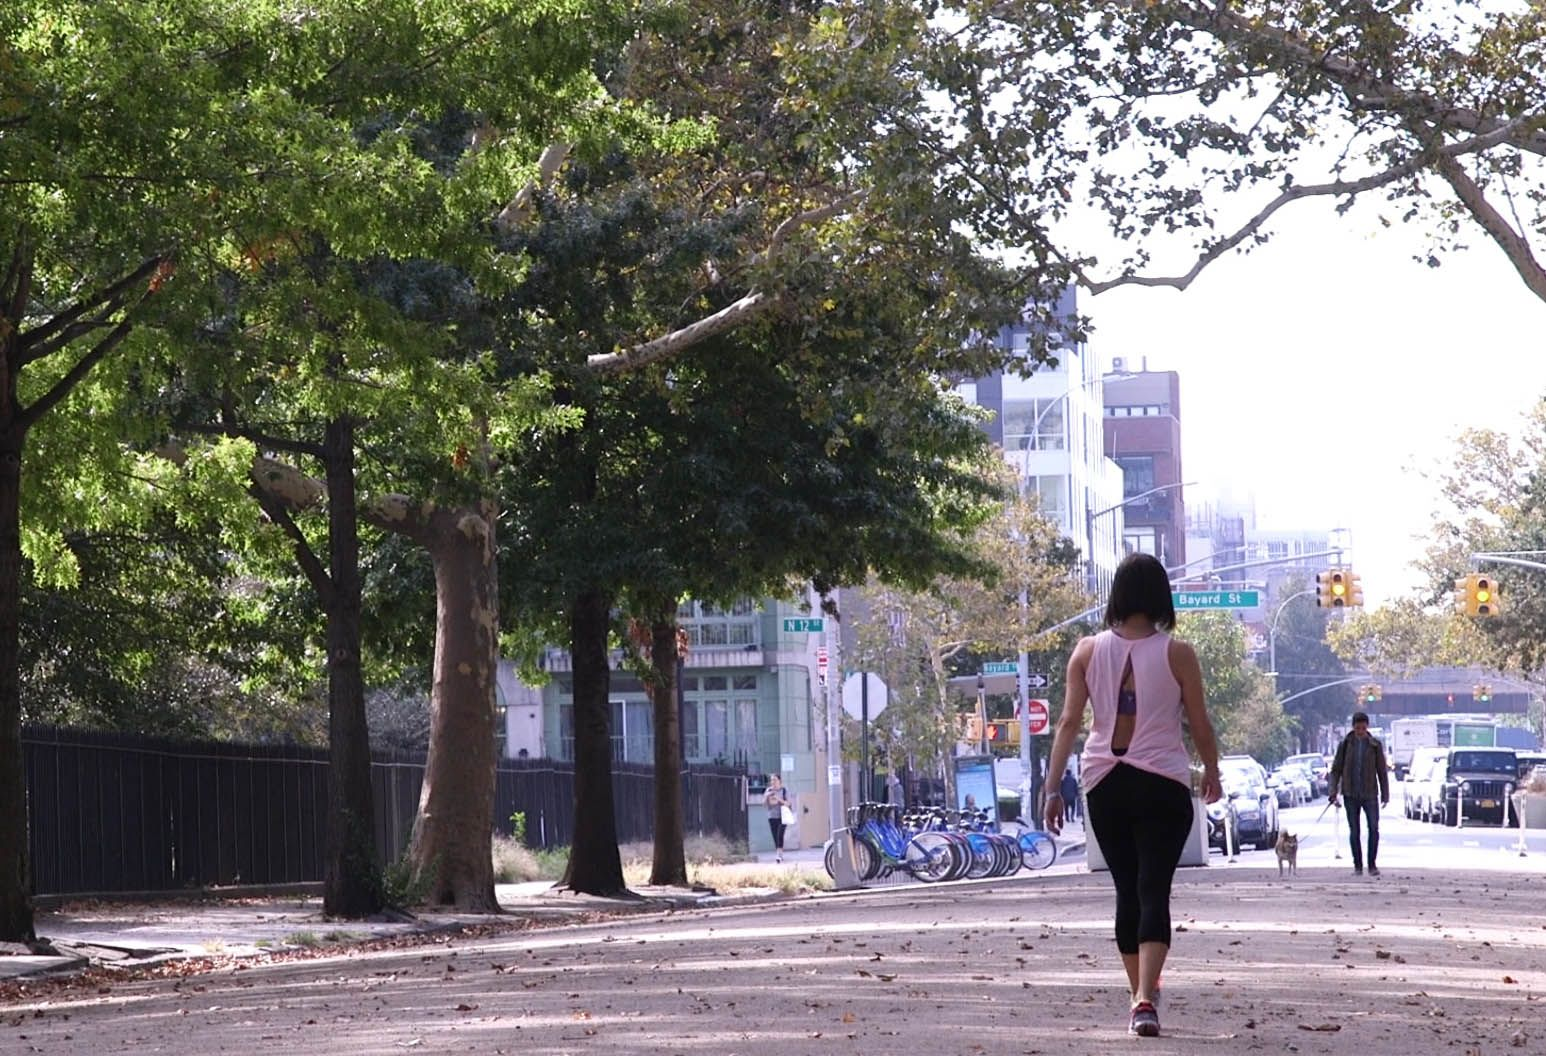 A woman in a pink blouse and black jeggings walks down a city street along a park.